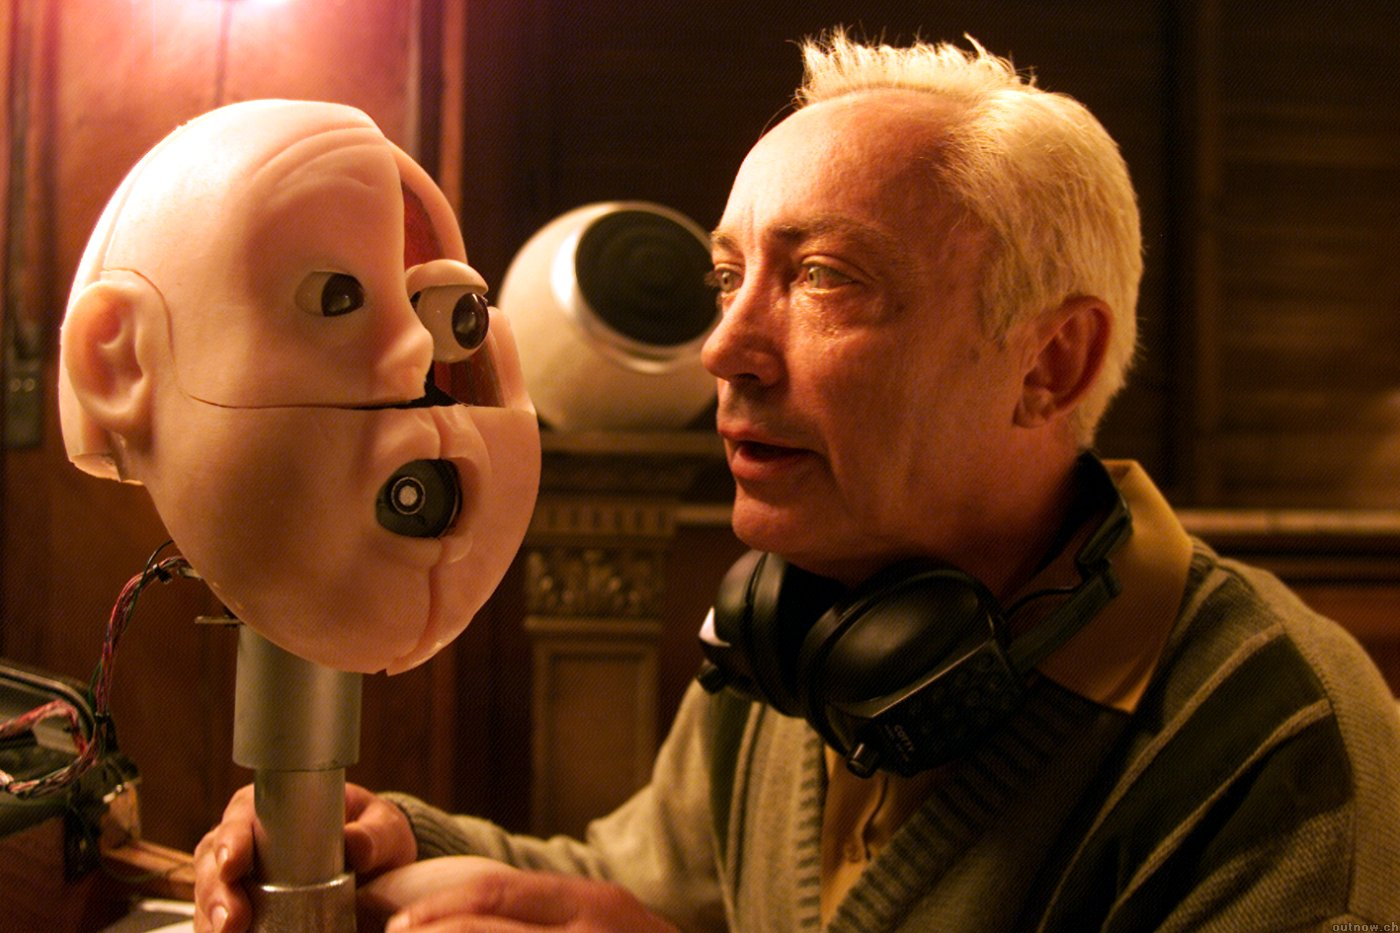 Udo Kier with android head in One Point 0 (2004)